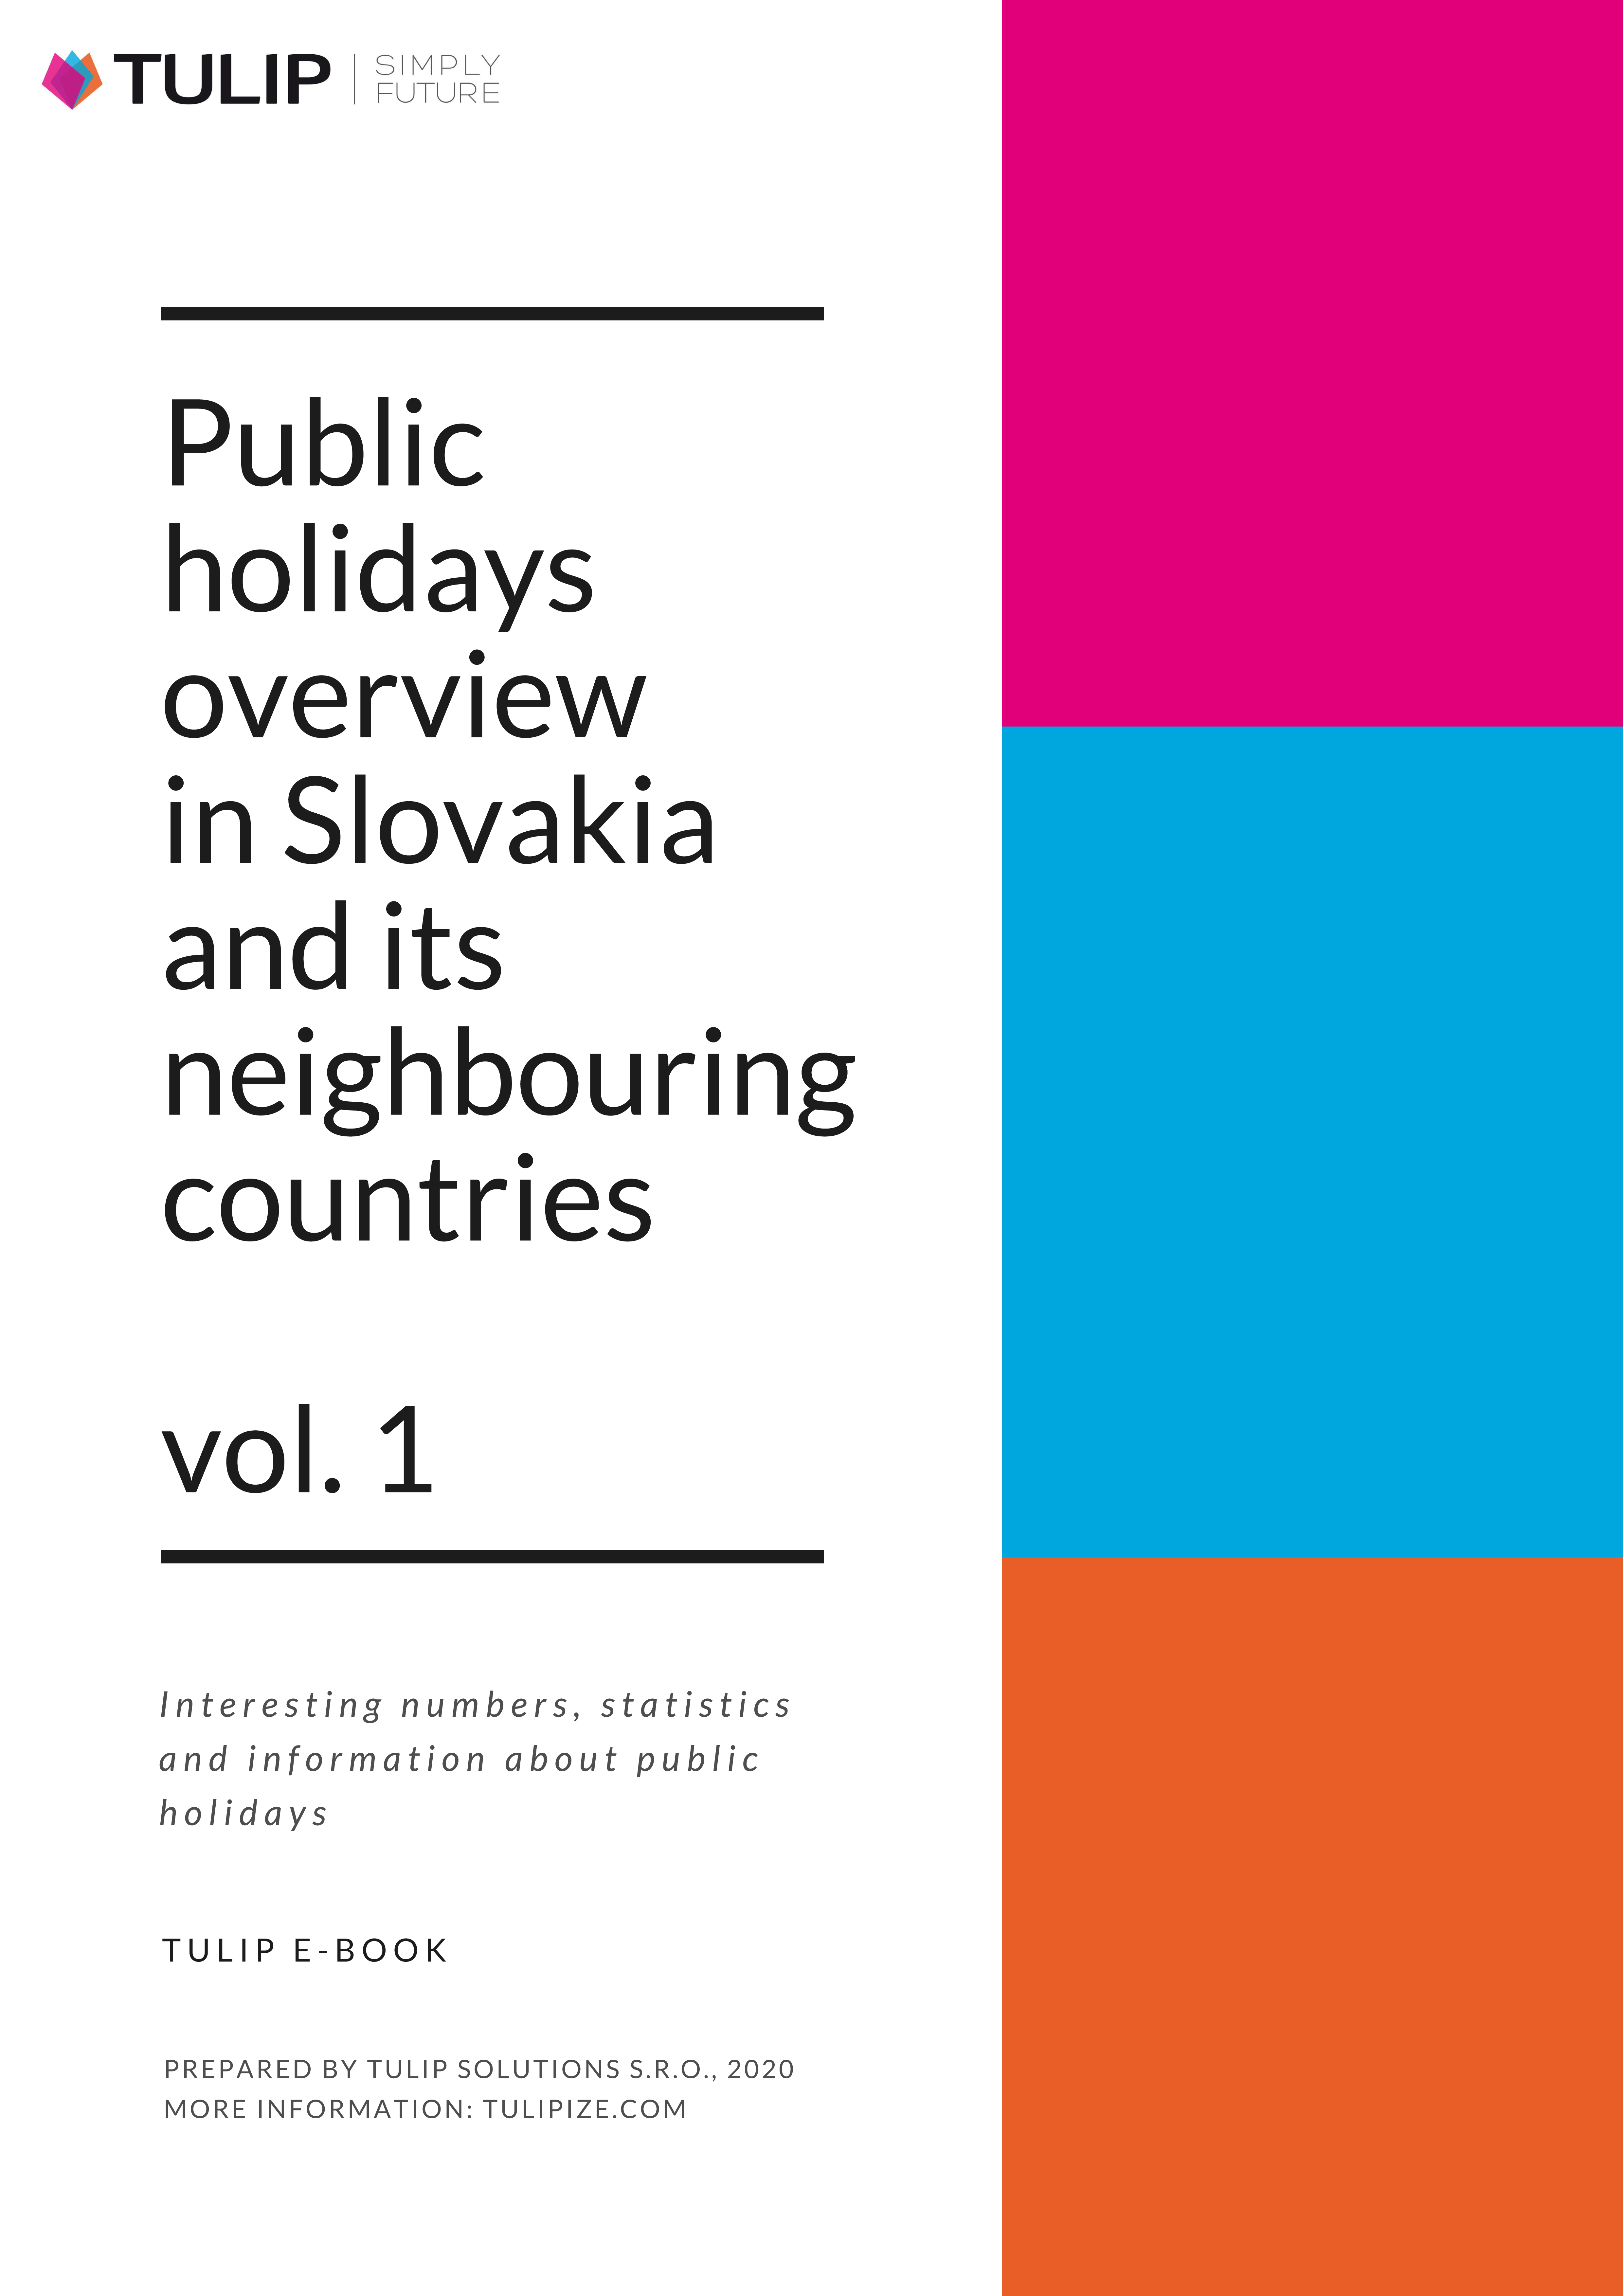 get free e-book about public holidays in slovakia, czechia, poland, hungary, austria and ukraine in 2021